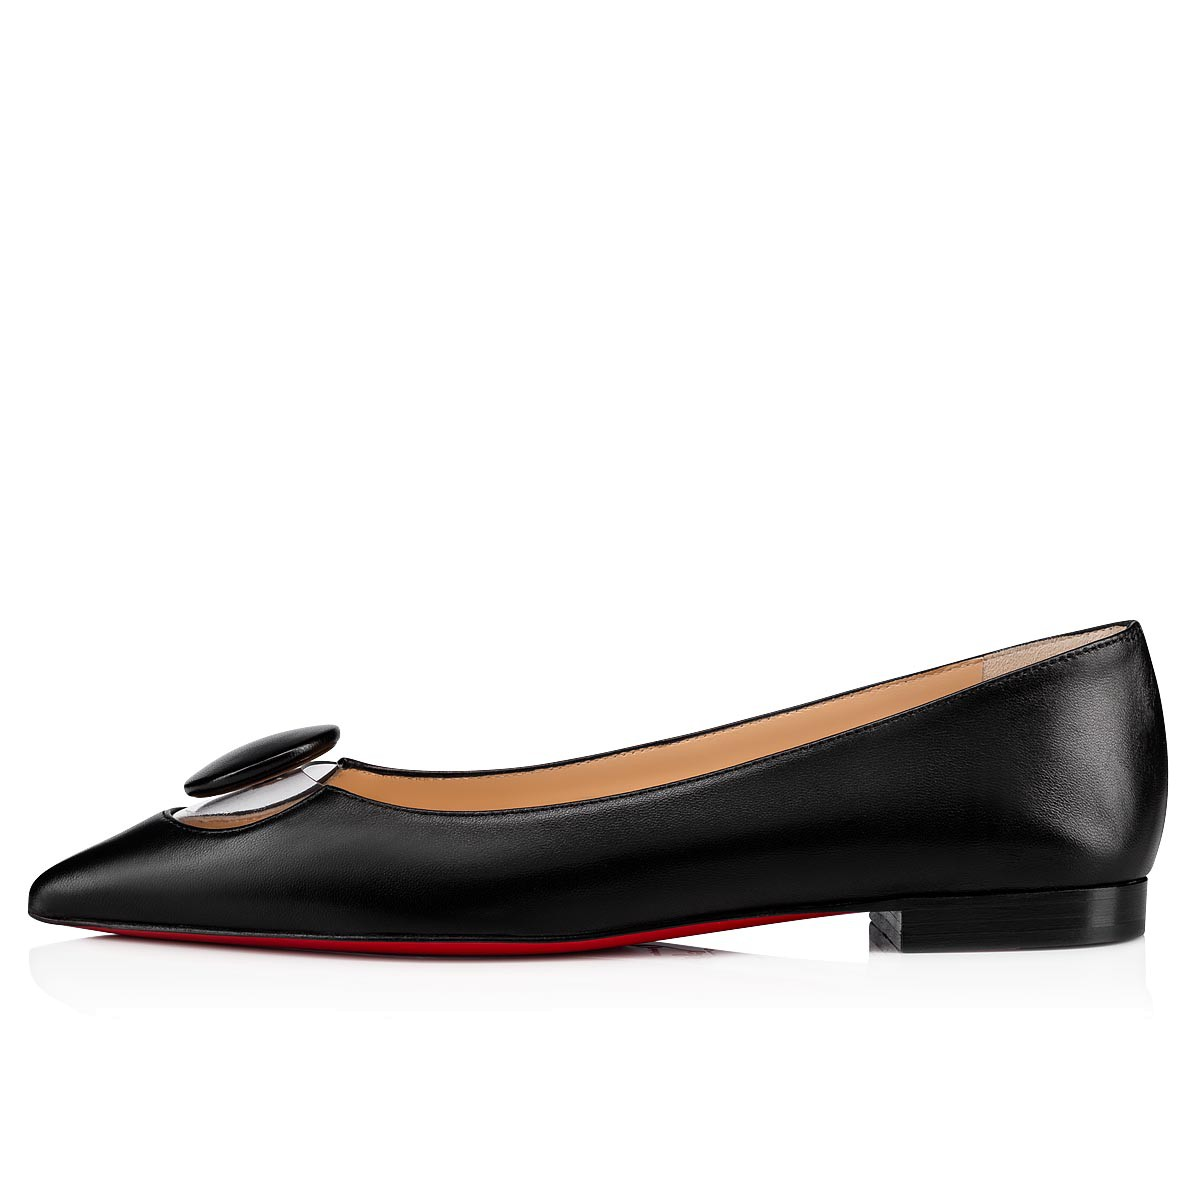 Women Shoes - Moon Flat - Christian Louboutin